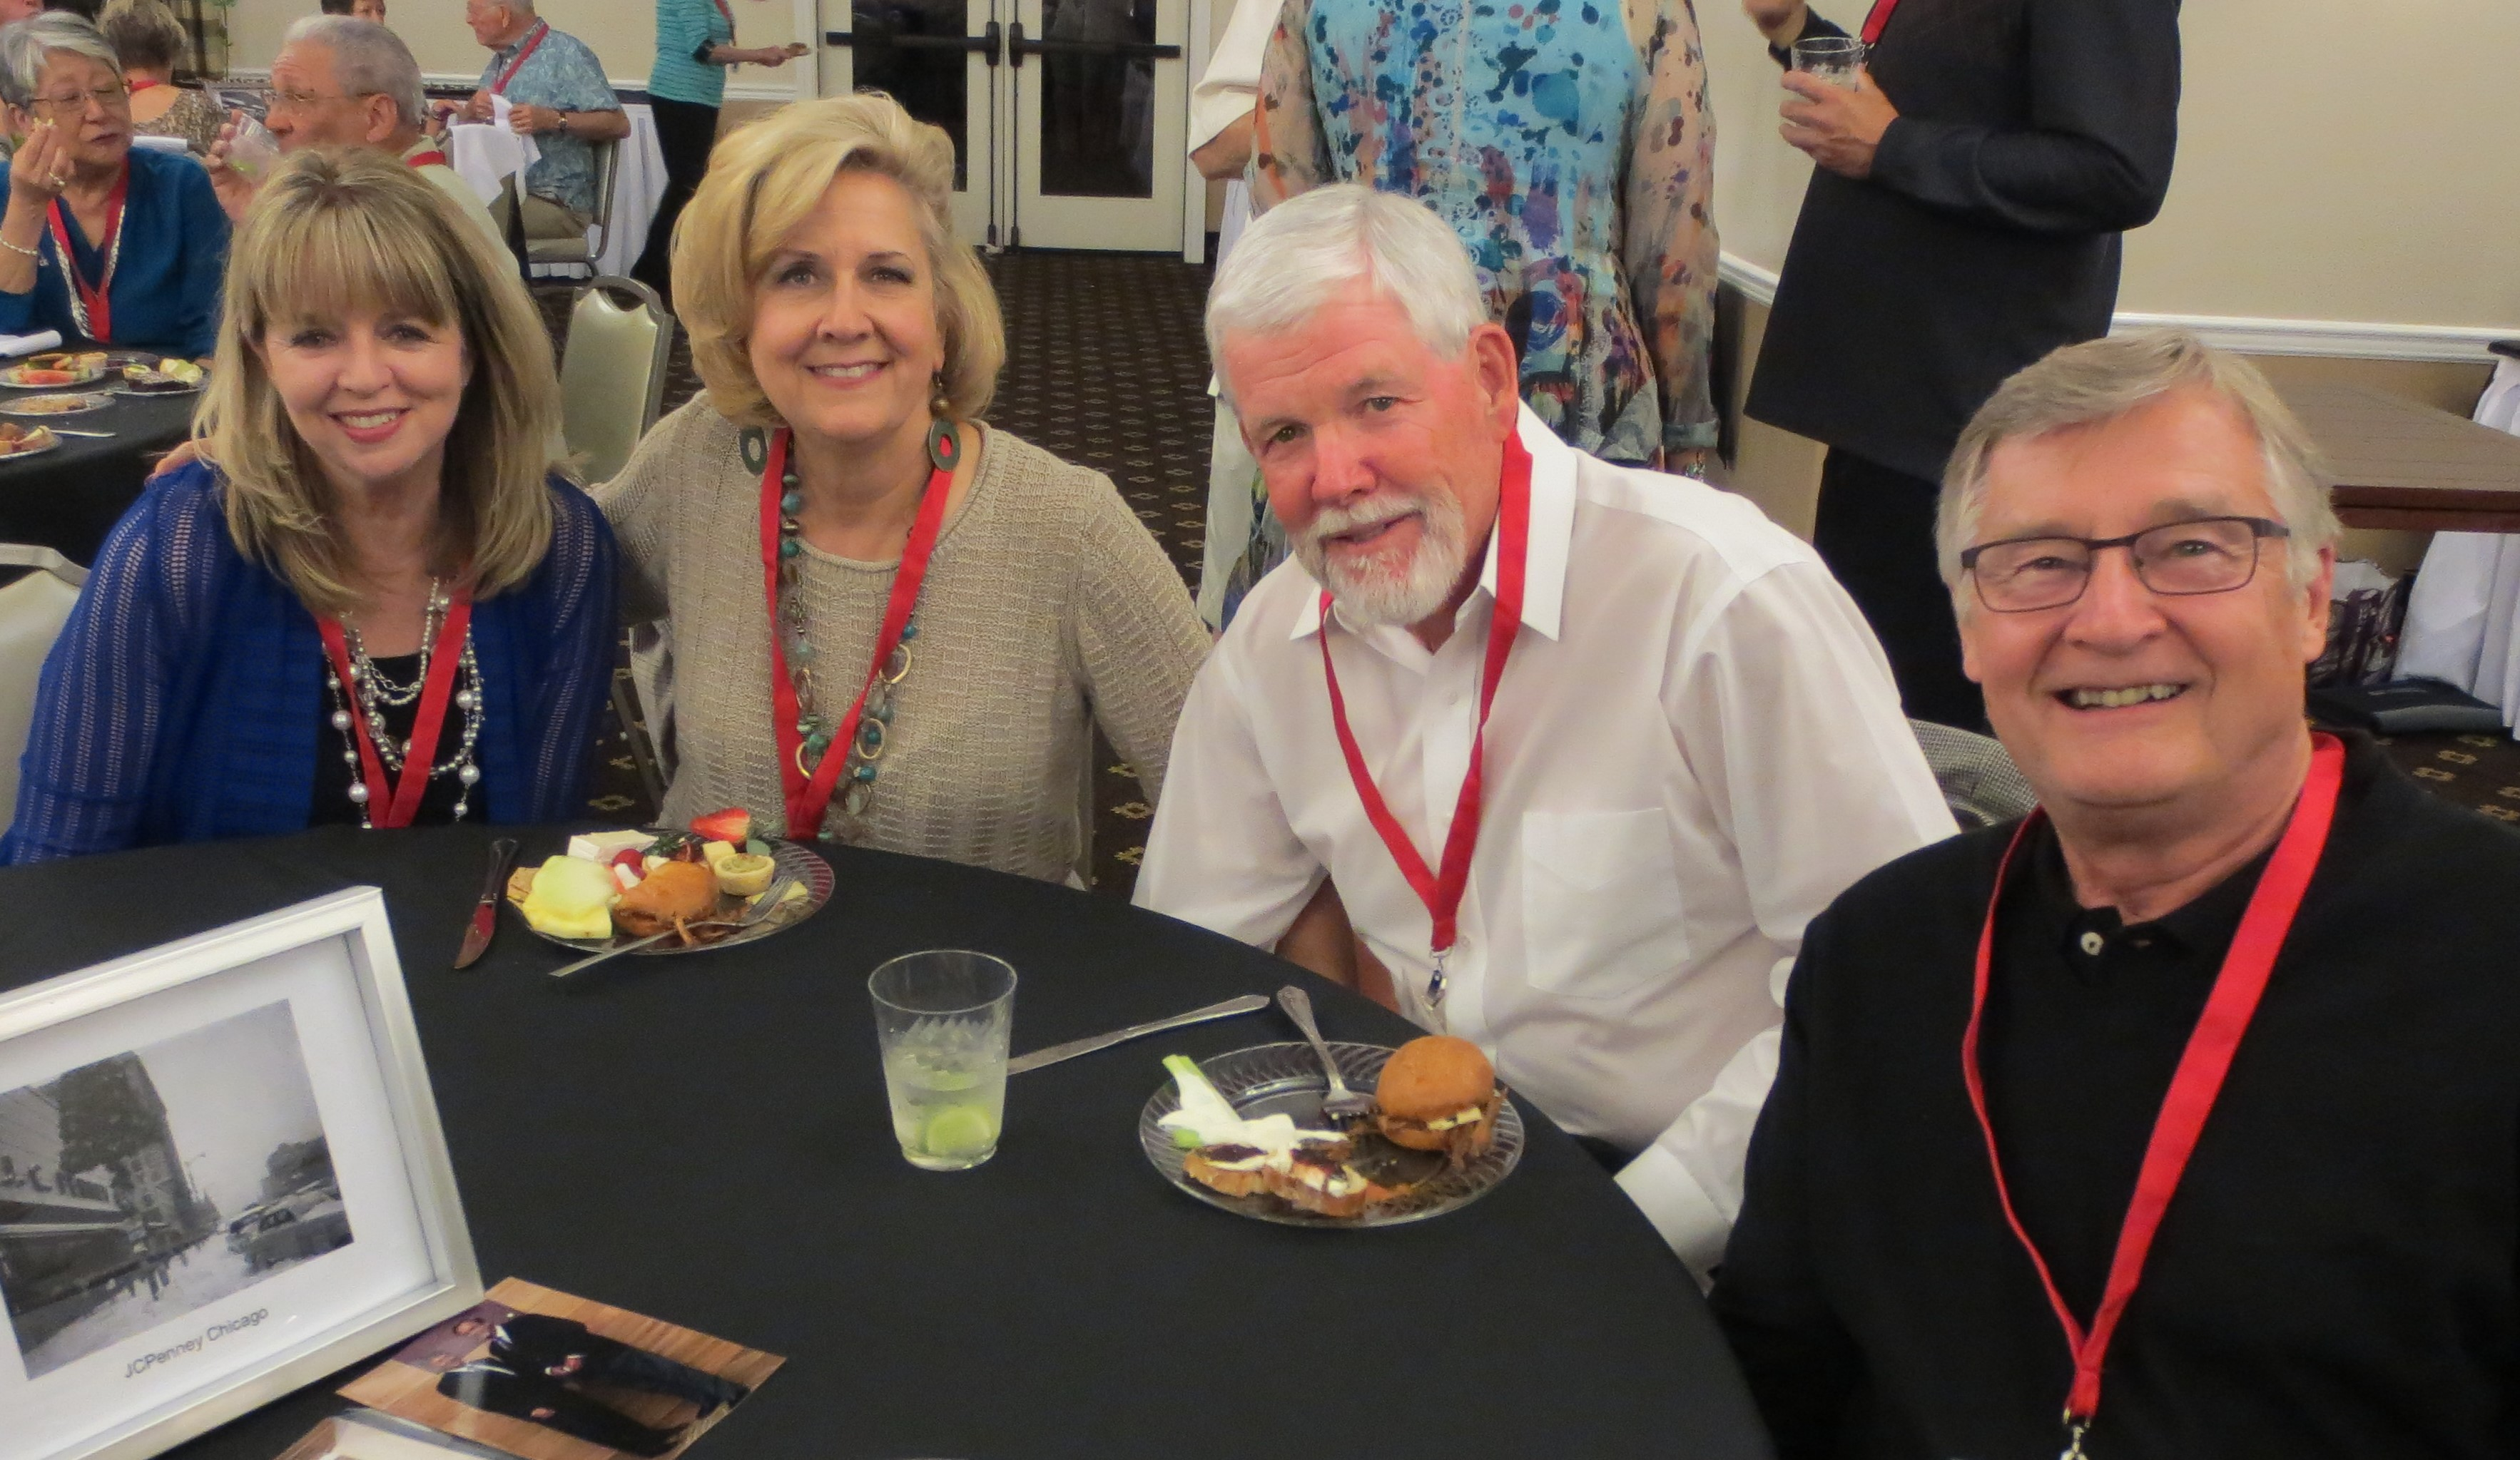 Cheryl Noble, Kathy Beard, Bob Beard and Larry Noble - Copy.JPG